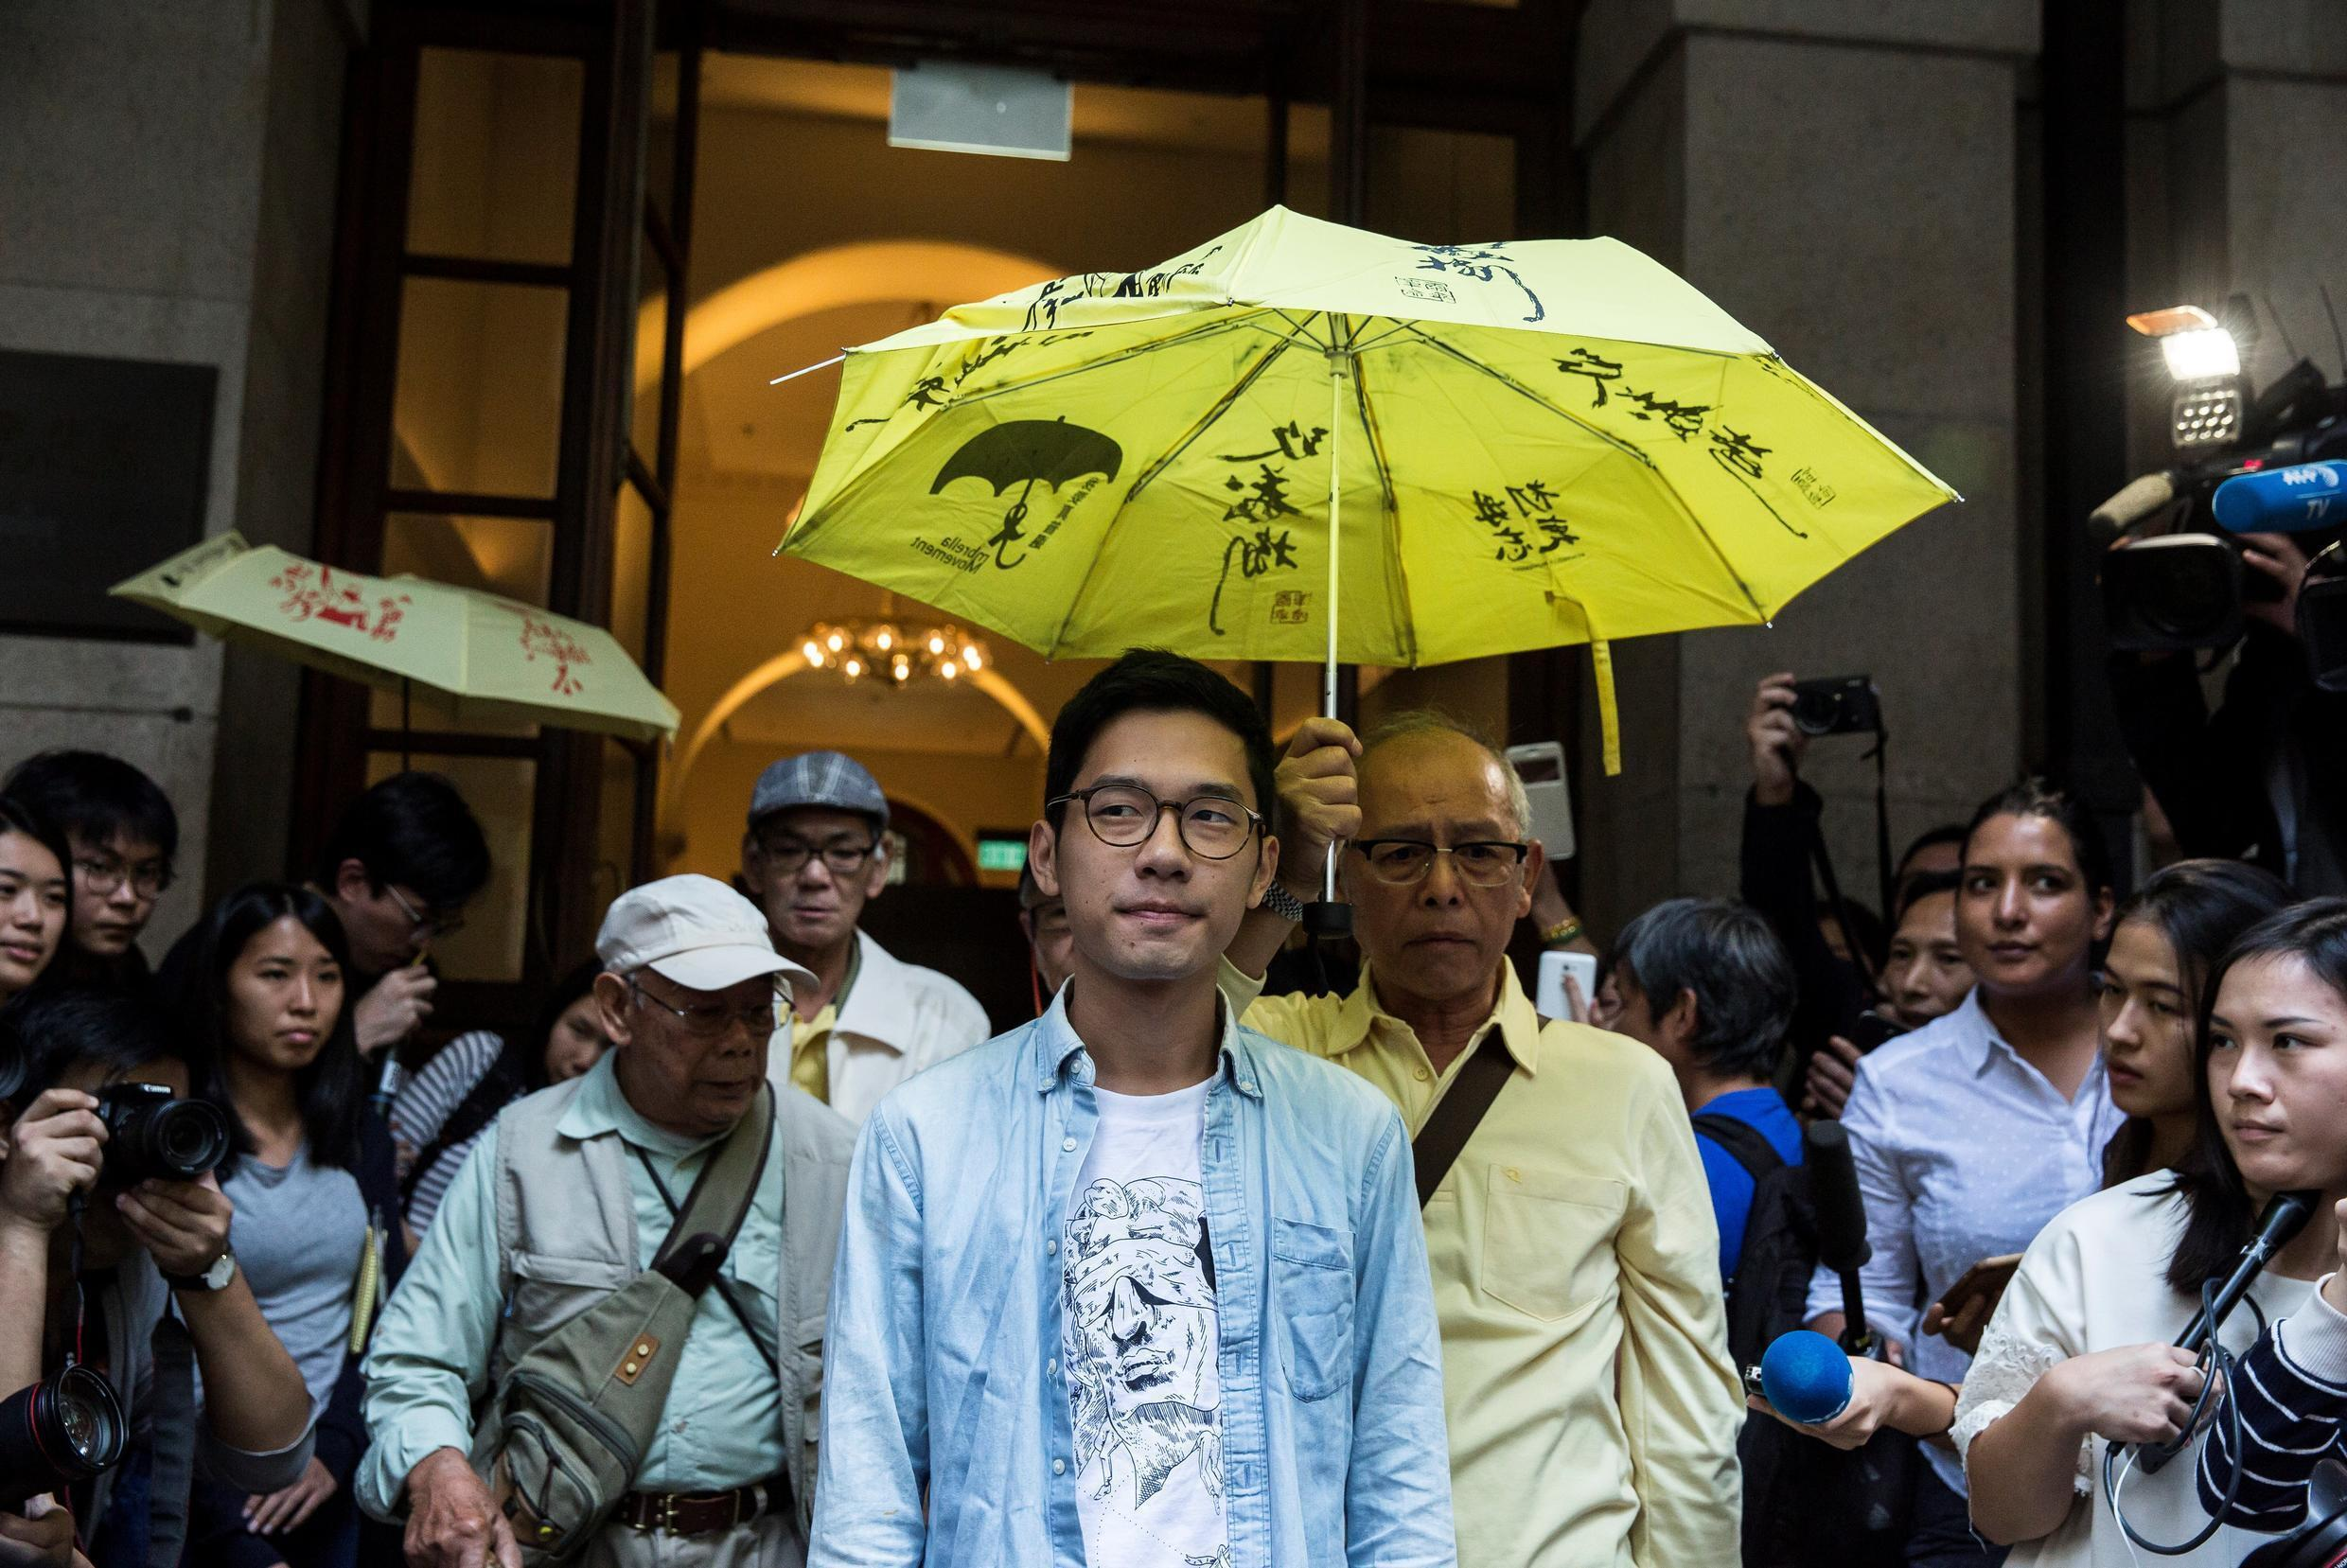 Pro-democracy activist Nathan Law (C) says he has relocated to Britain after fleeing Hong Kong because of a tough new security law imposed by Beijing